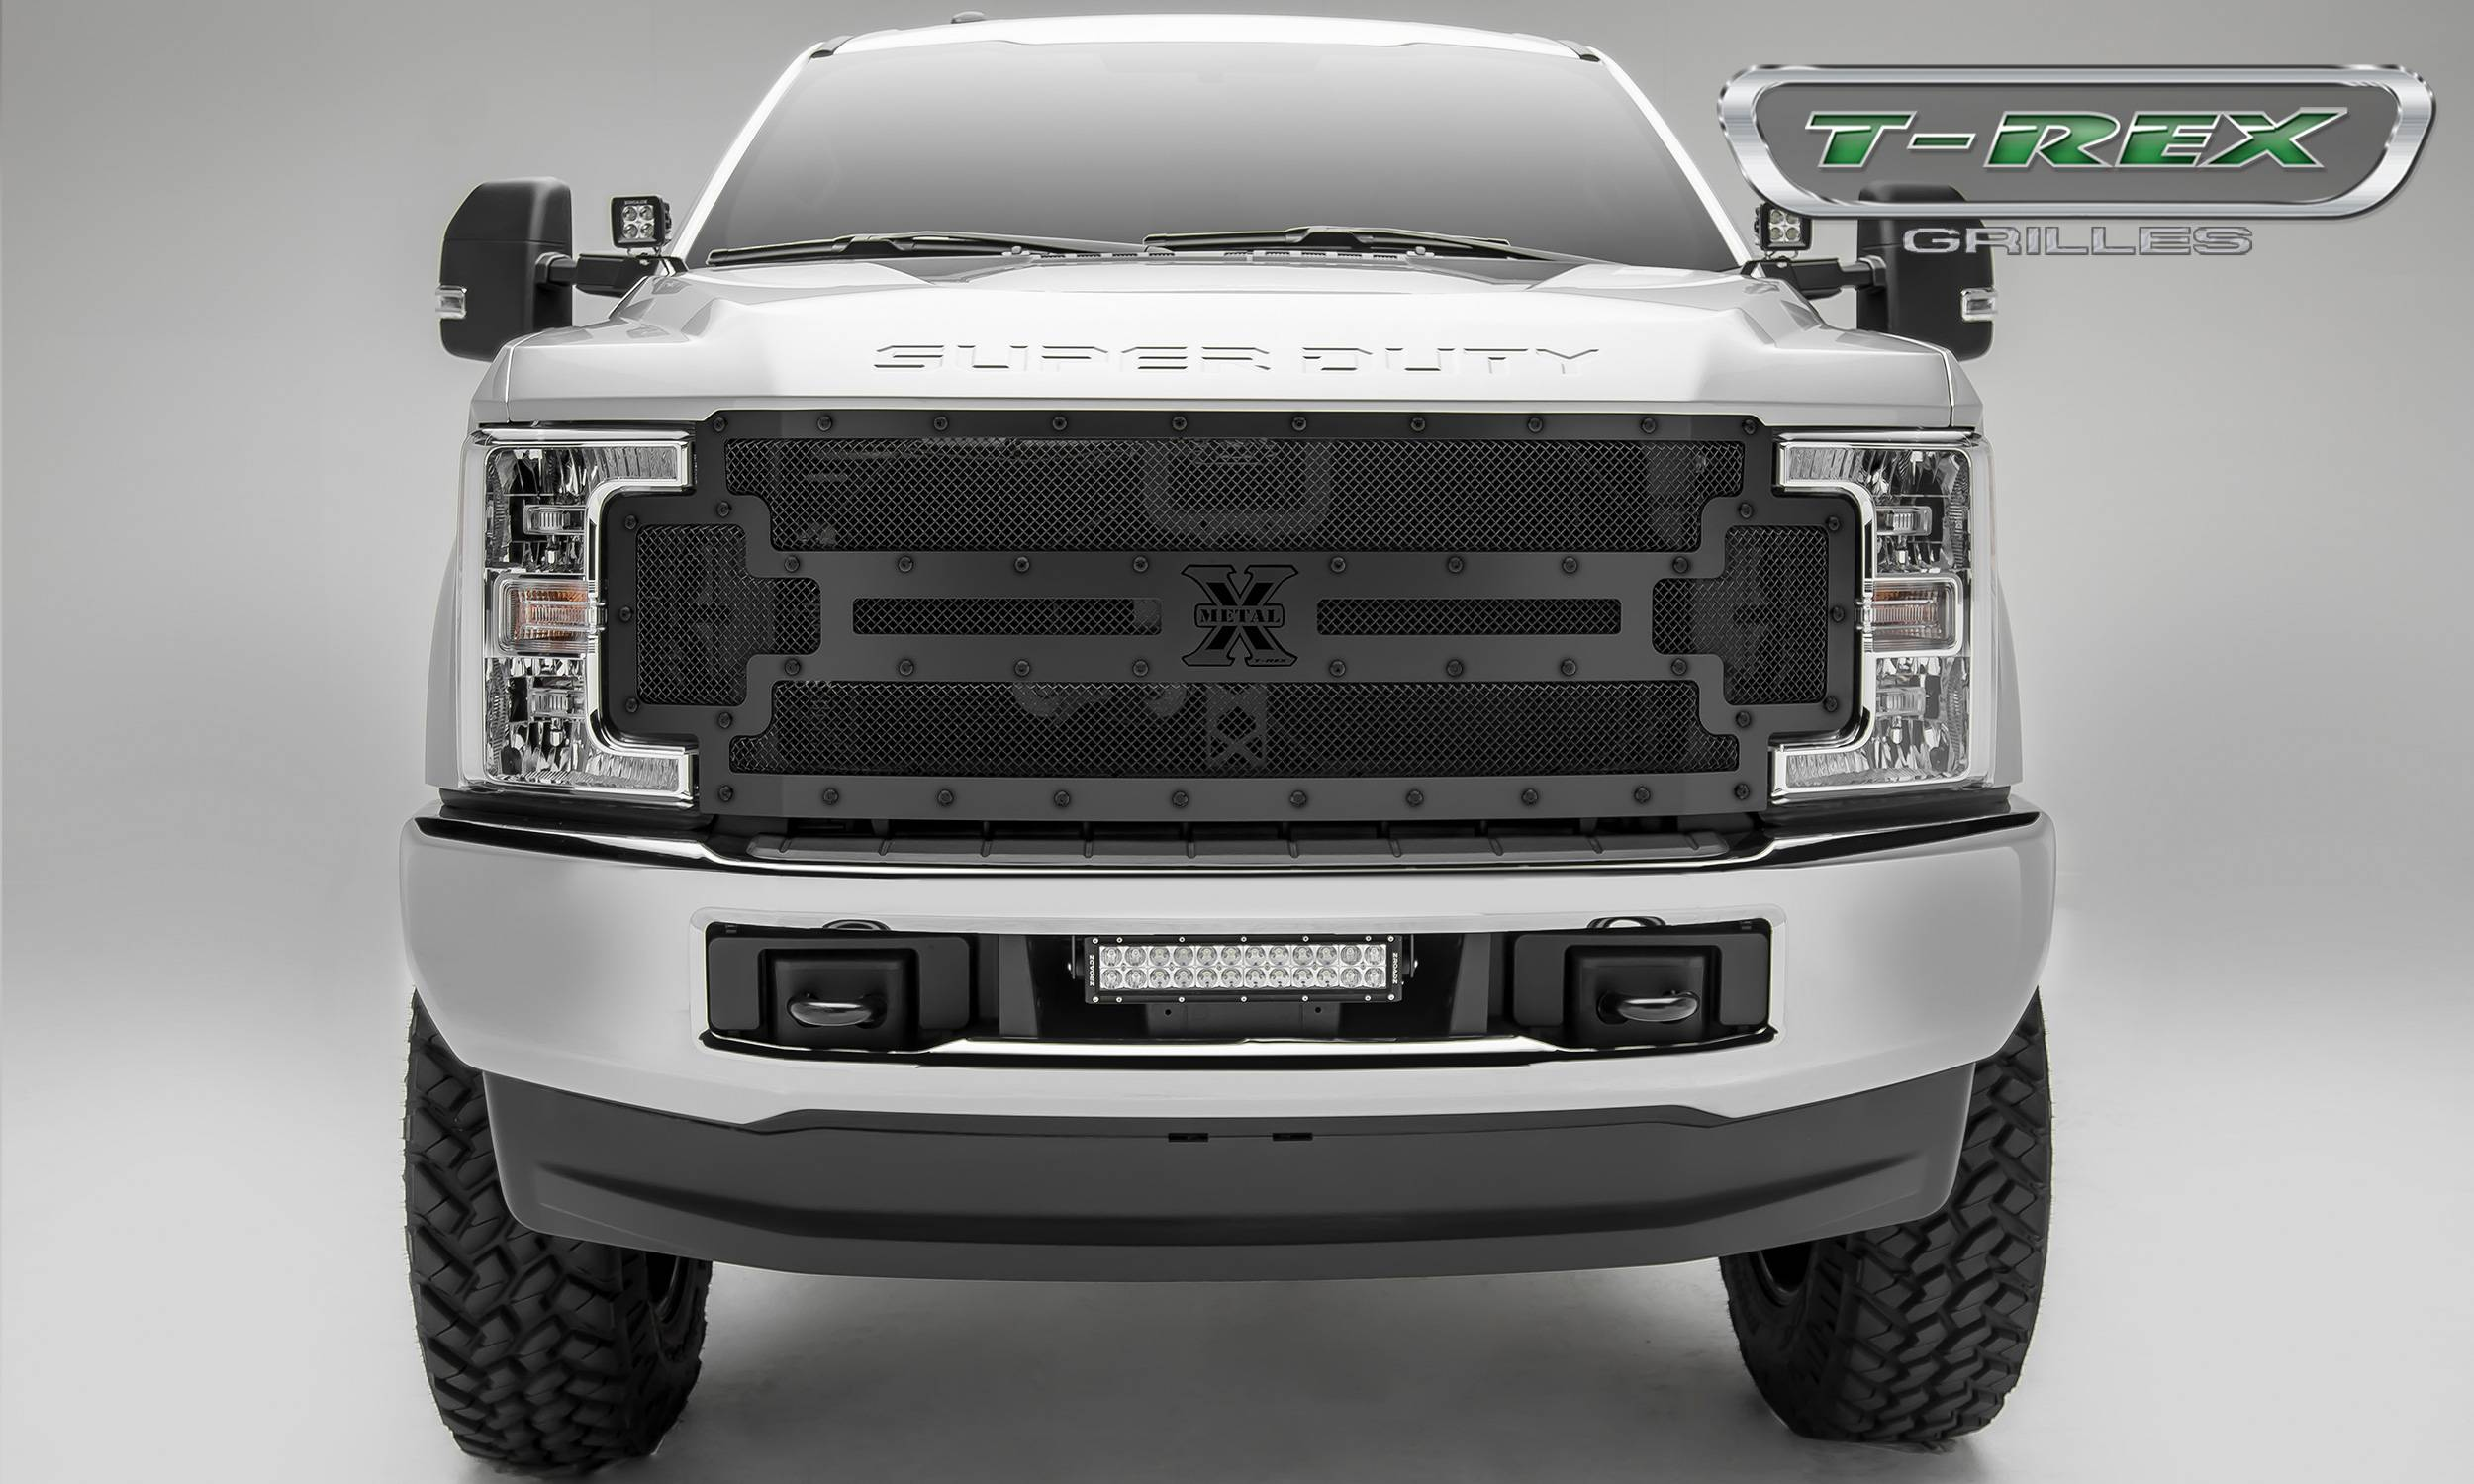 T rex ford f 250 f 350 super duty stealth metal main replacement grille steel frame w wire mesh black studded with black powdercoat finish pt